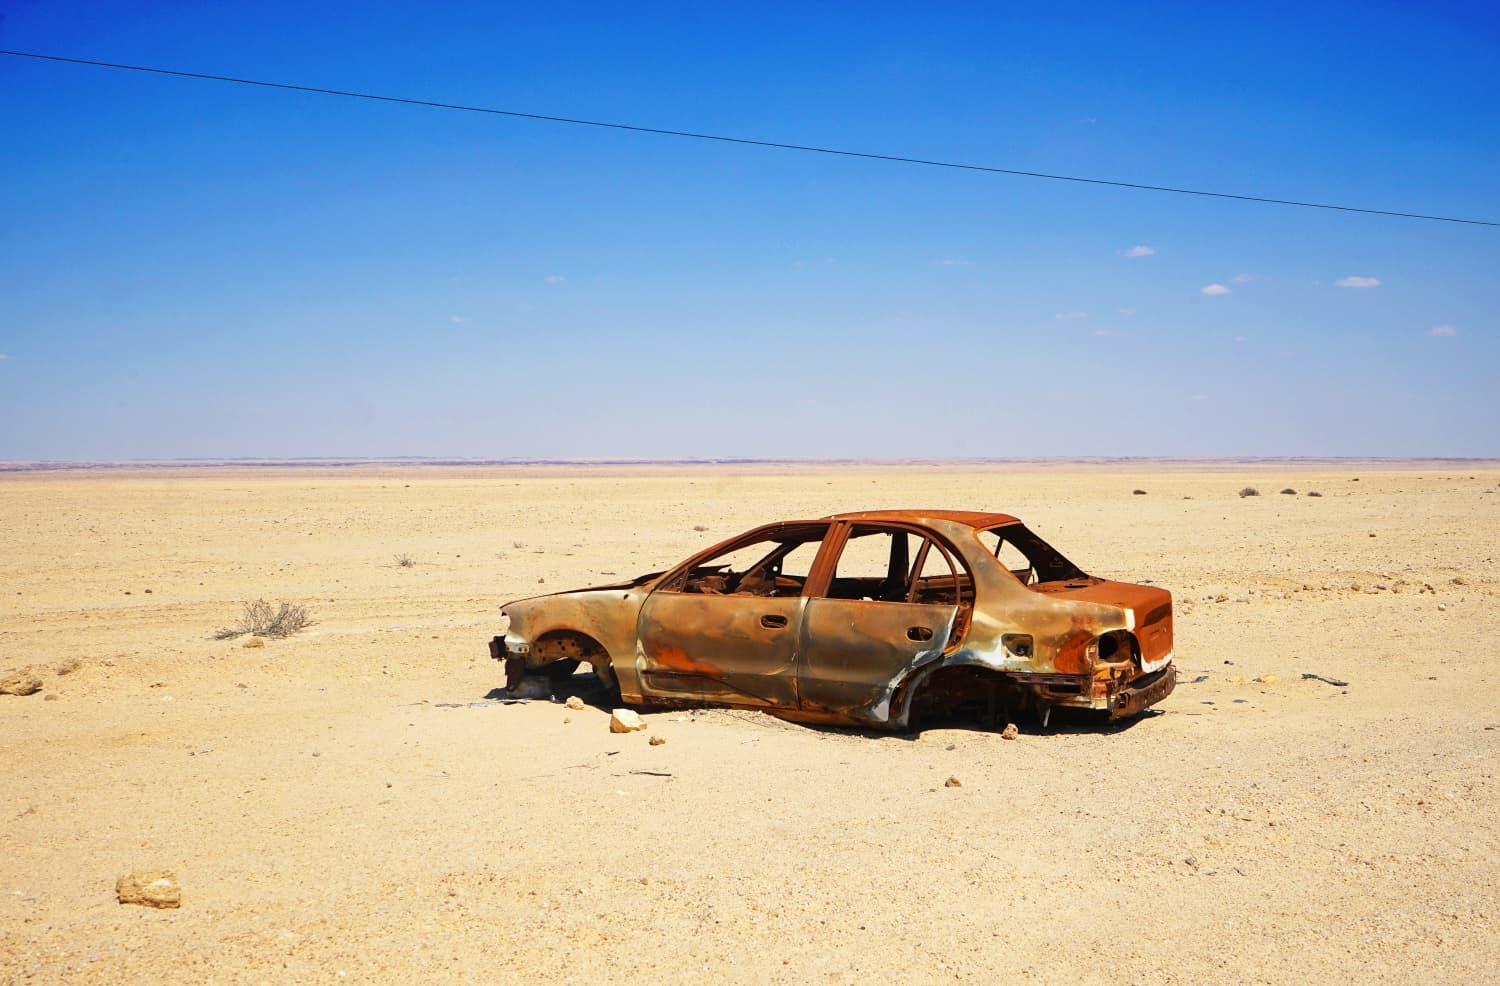 Burnt out car in Namibia